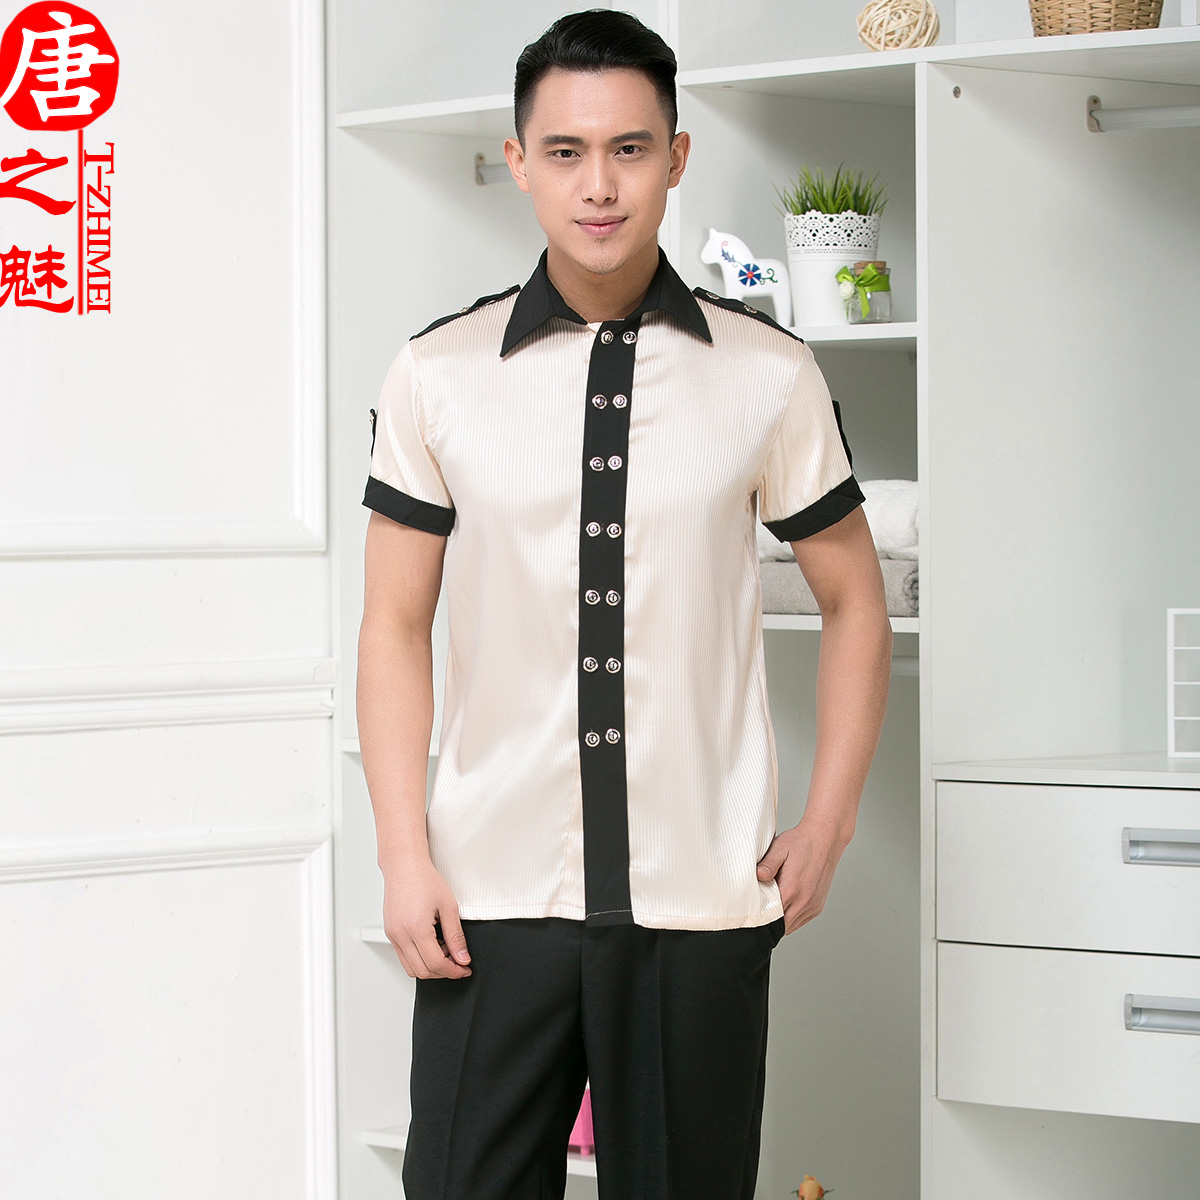 The hotel restaurant waiter overalls summer hotel restaurant uniforms sleeved overalls hotel restaurant waiter sleeved